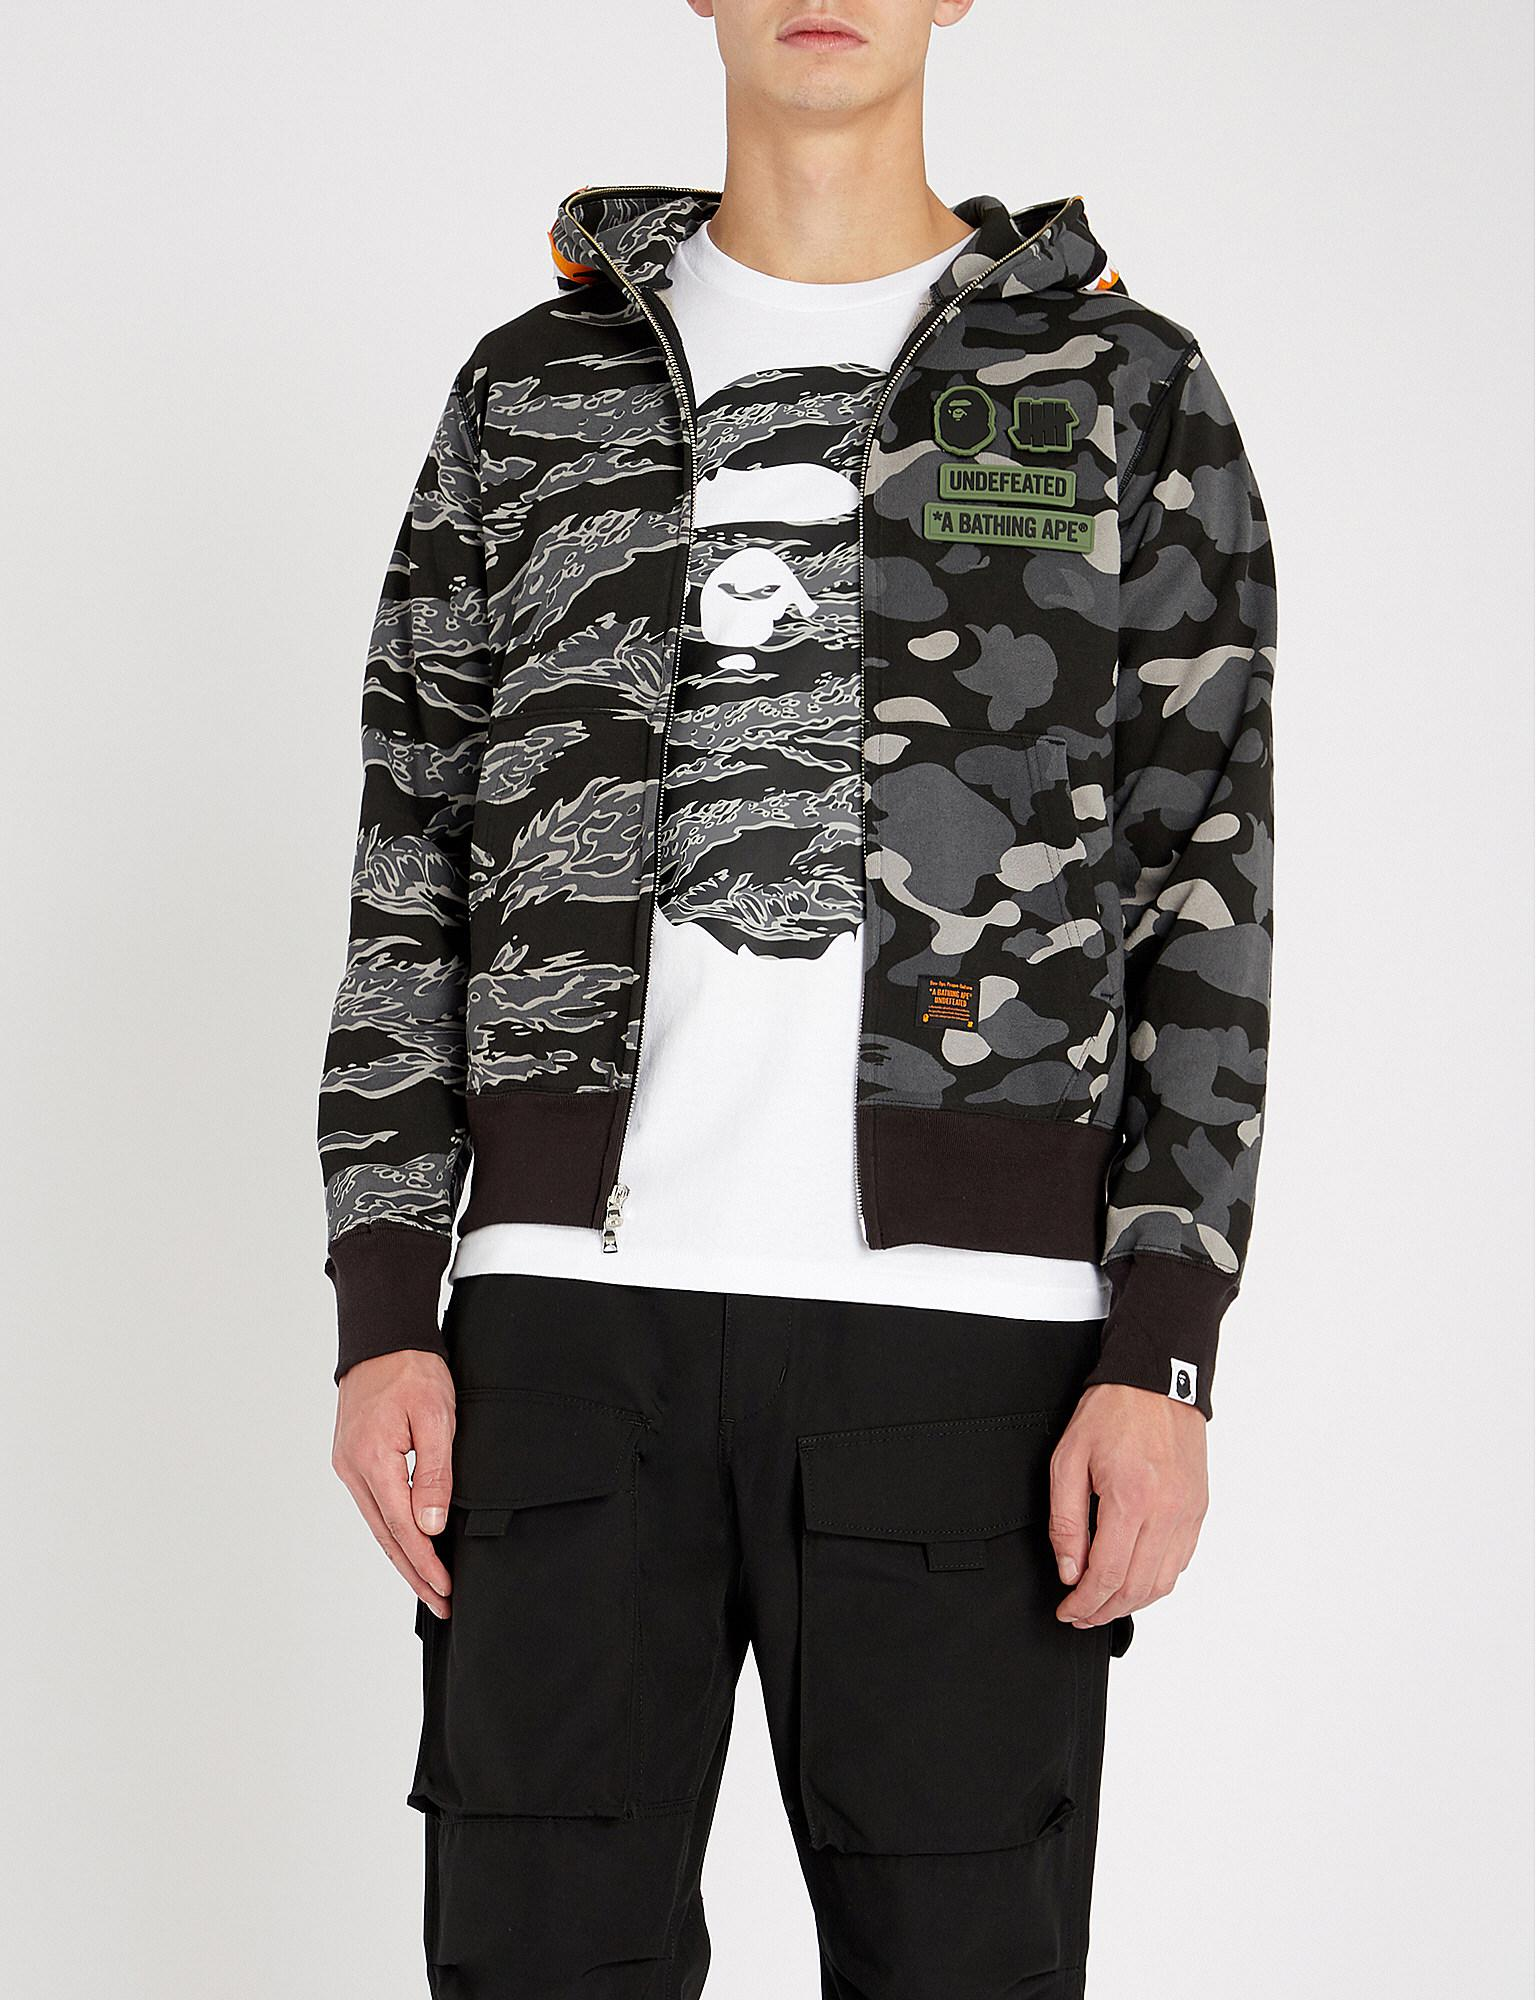 0a5b5db2 A Bathing Ape Undefeated Shark Tiger Cotton-jersey Hoody in Black ...